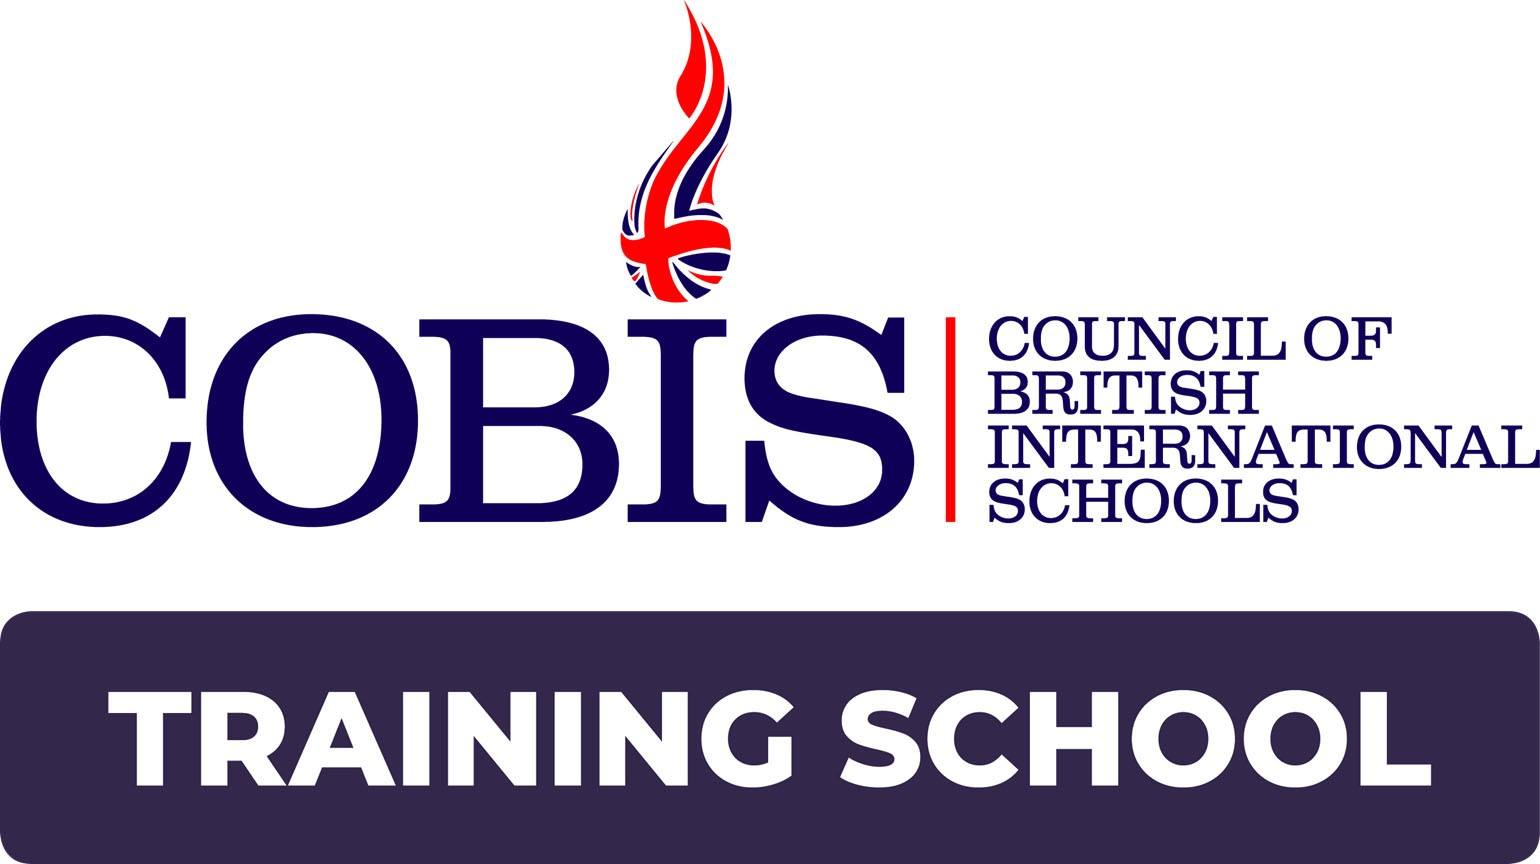 NCBIS is a COBIS Training School